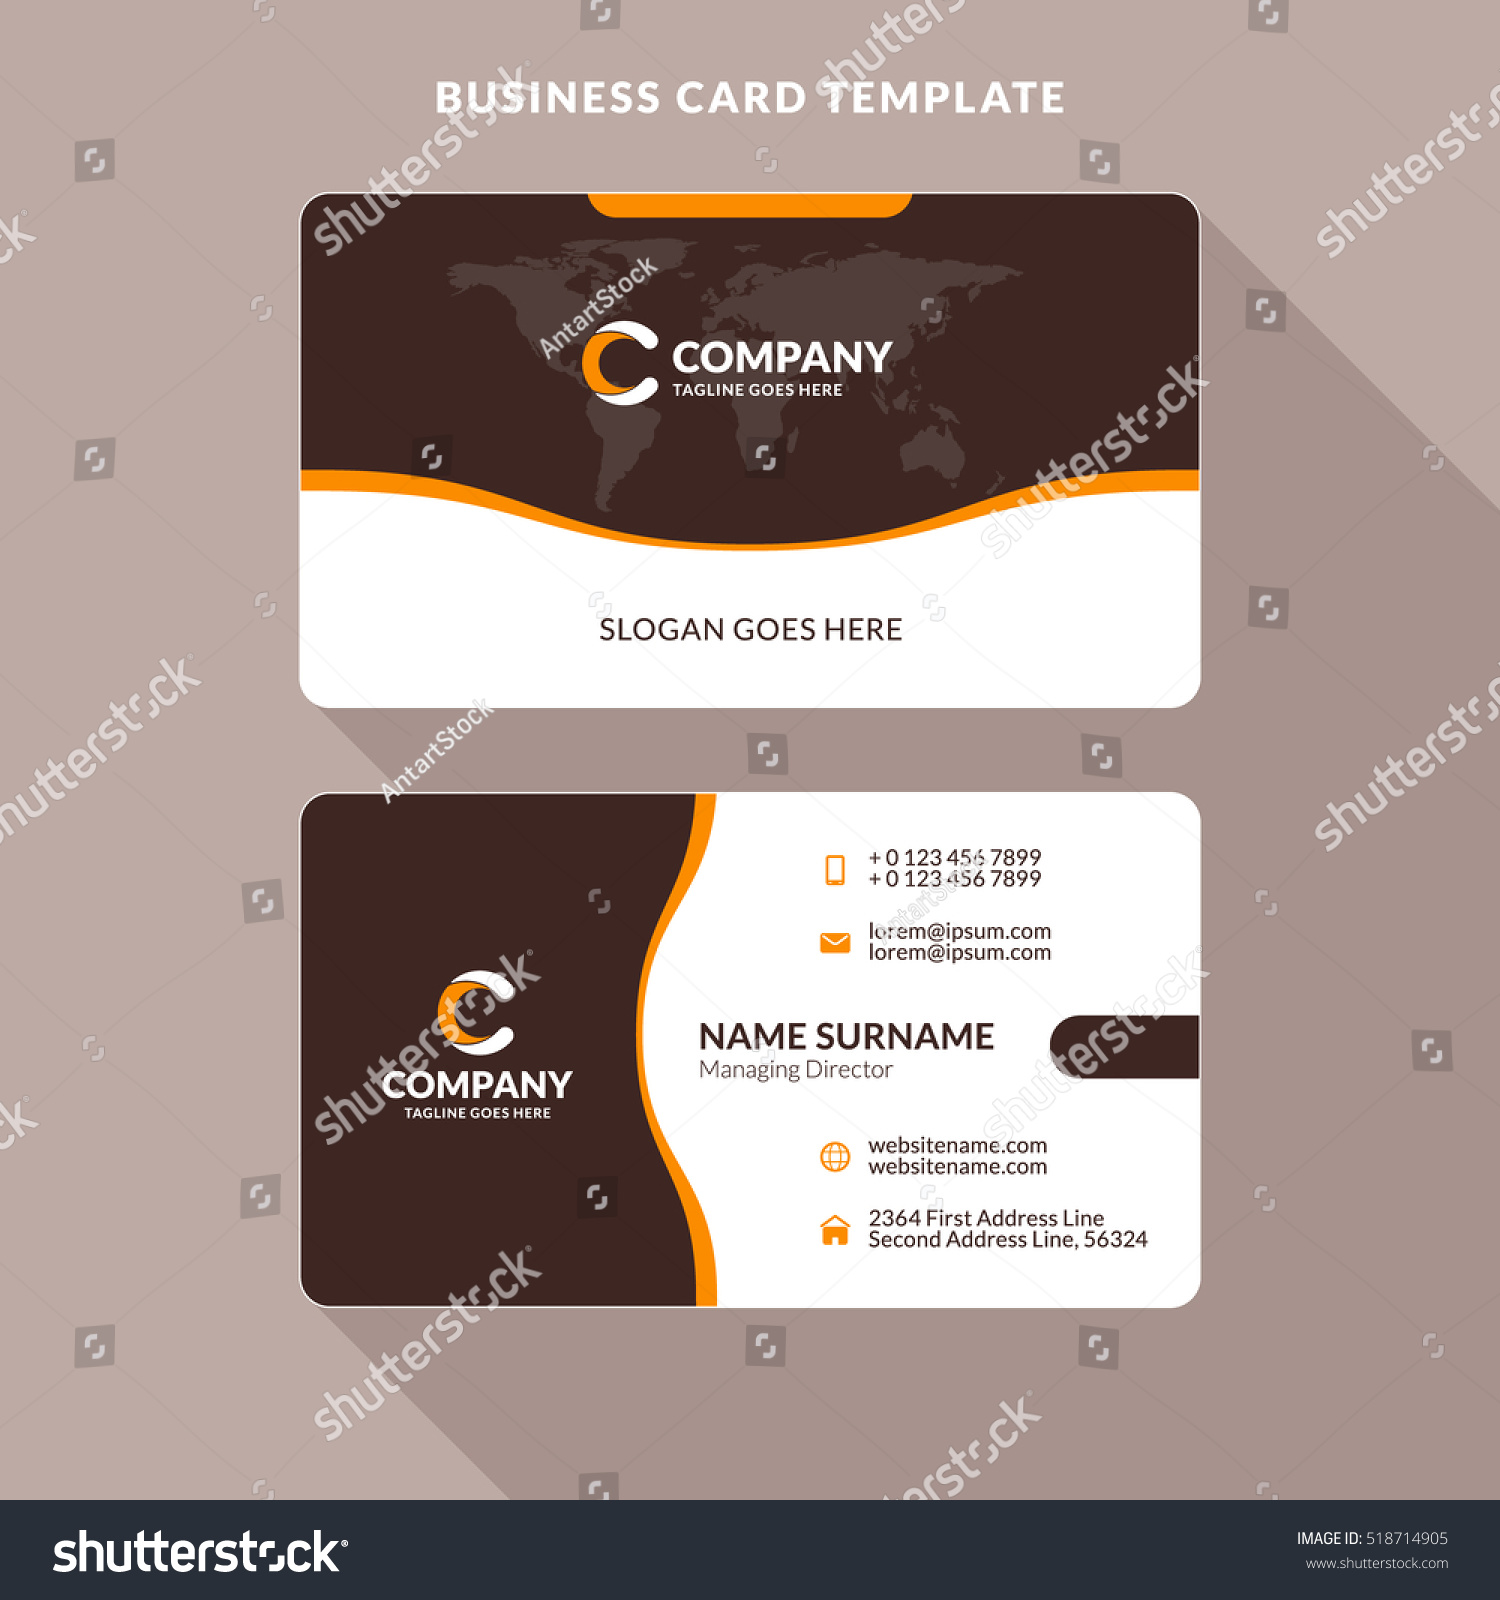 Creative clean doublesided business card template stock for Busniess card template